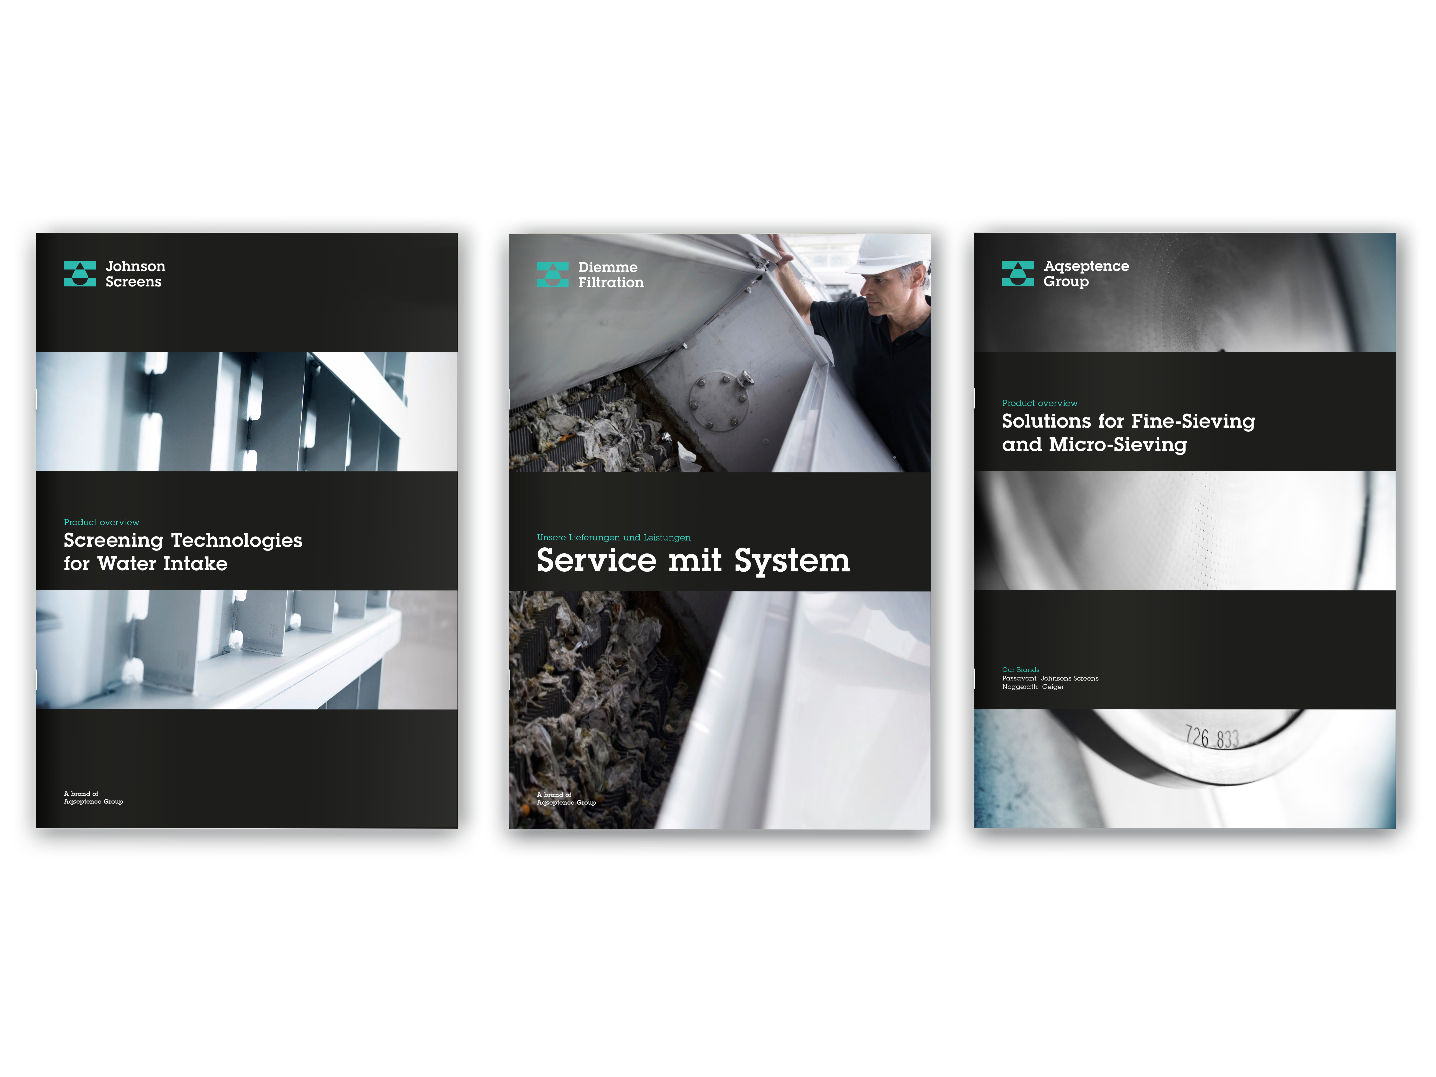 Aqseptence three brochure covers